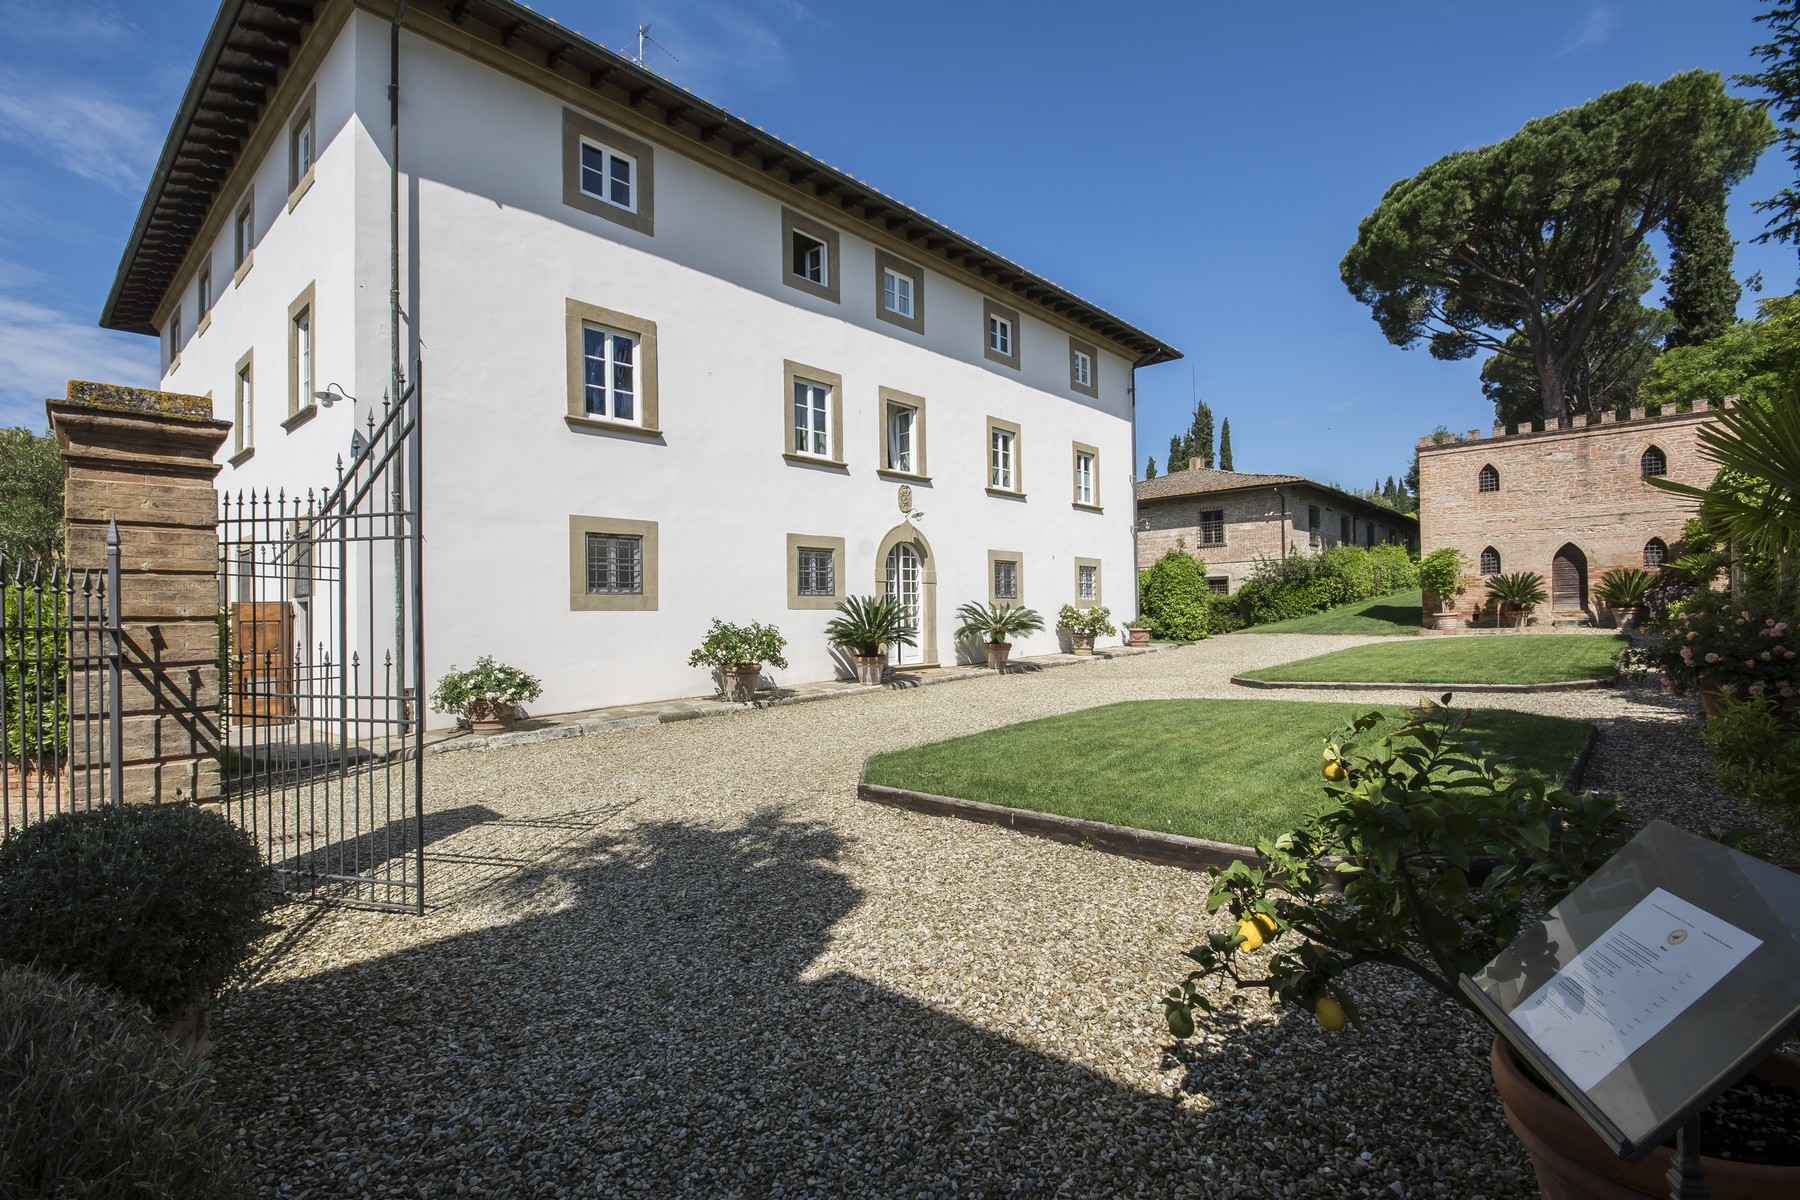 Single Family Home for Sale at Breathtaking Tuscan estate with pool and tennis court Peccioli, Pisa Italy